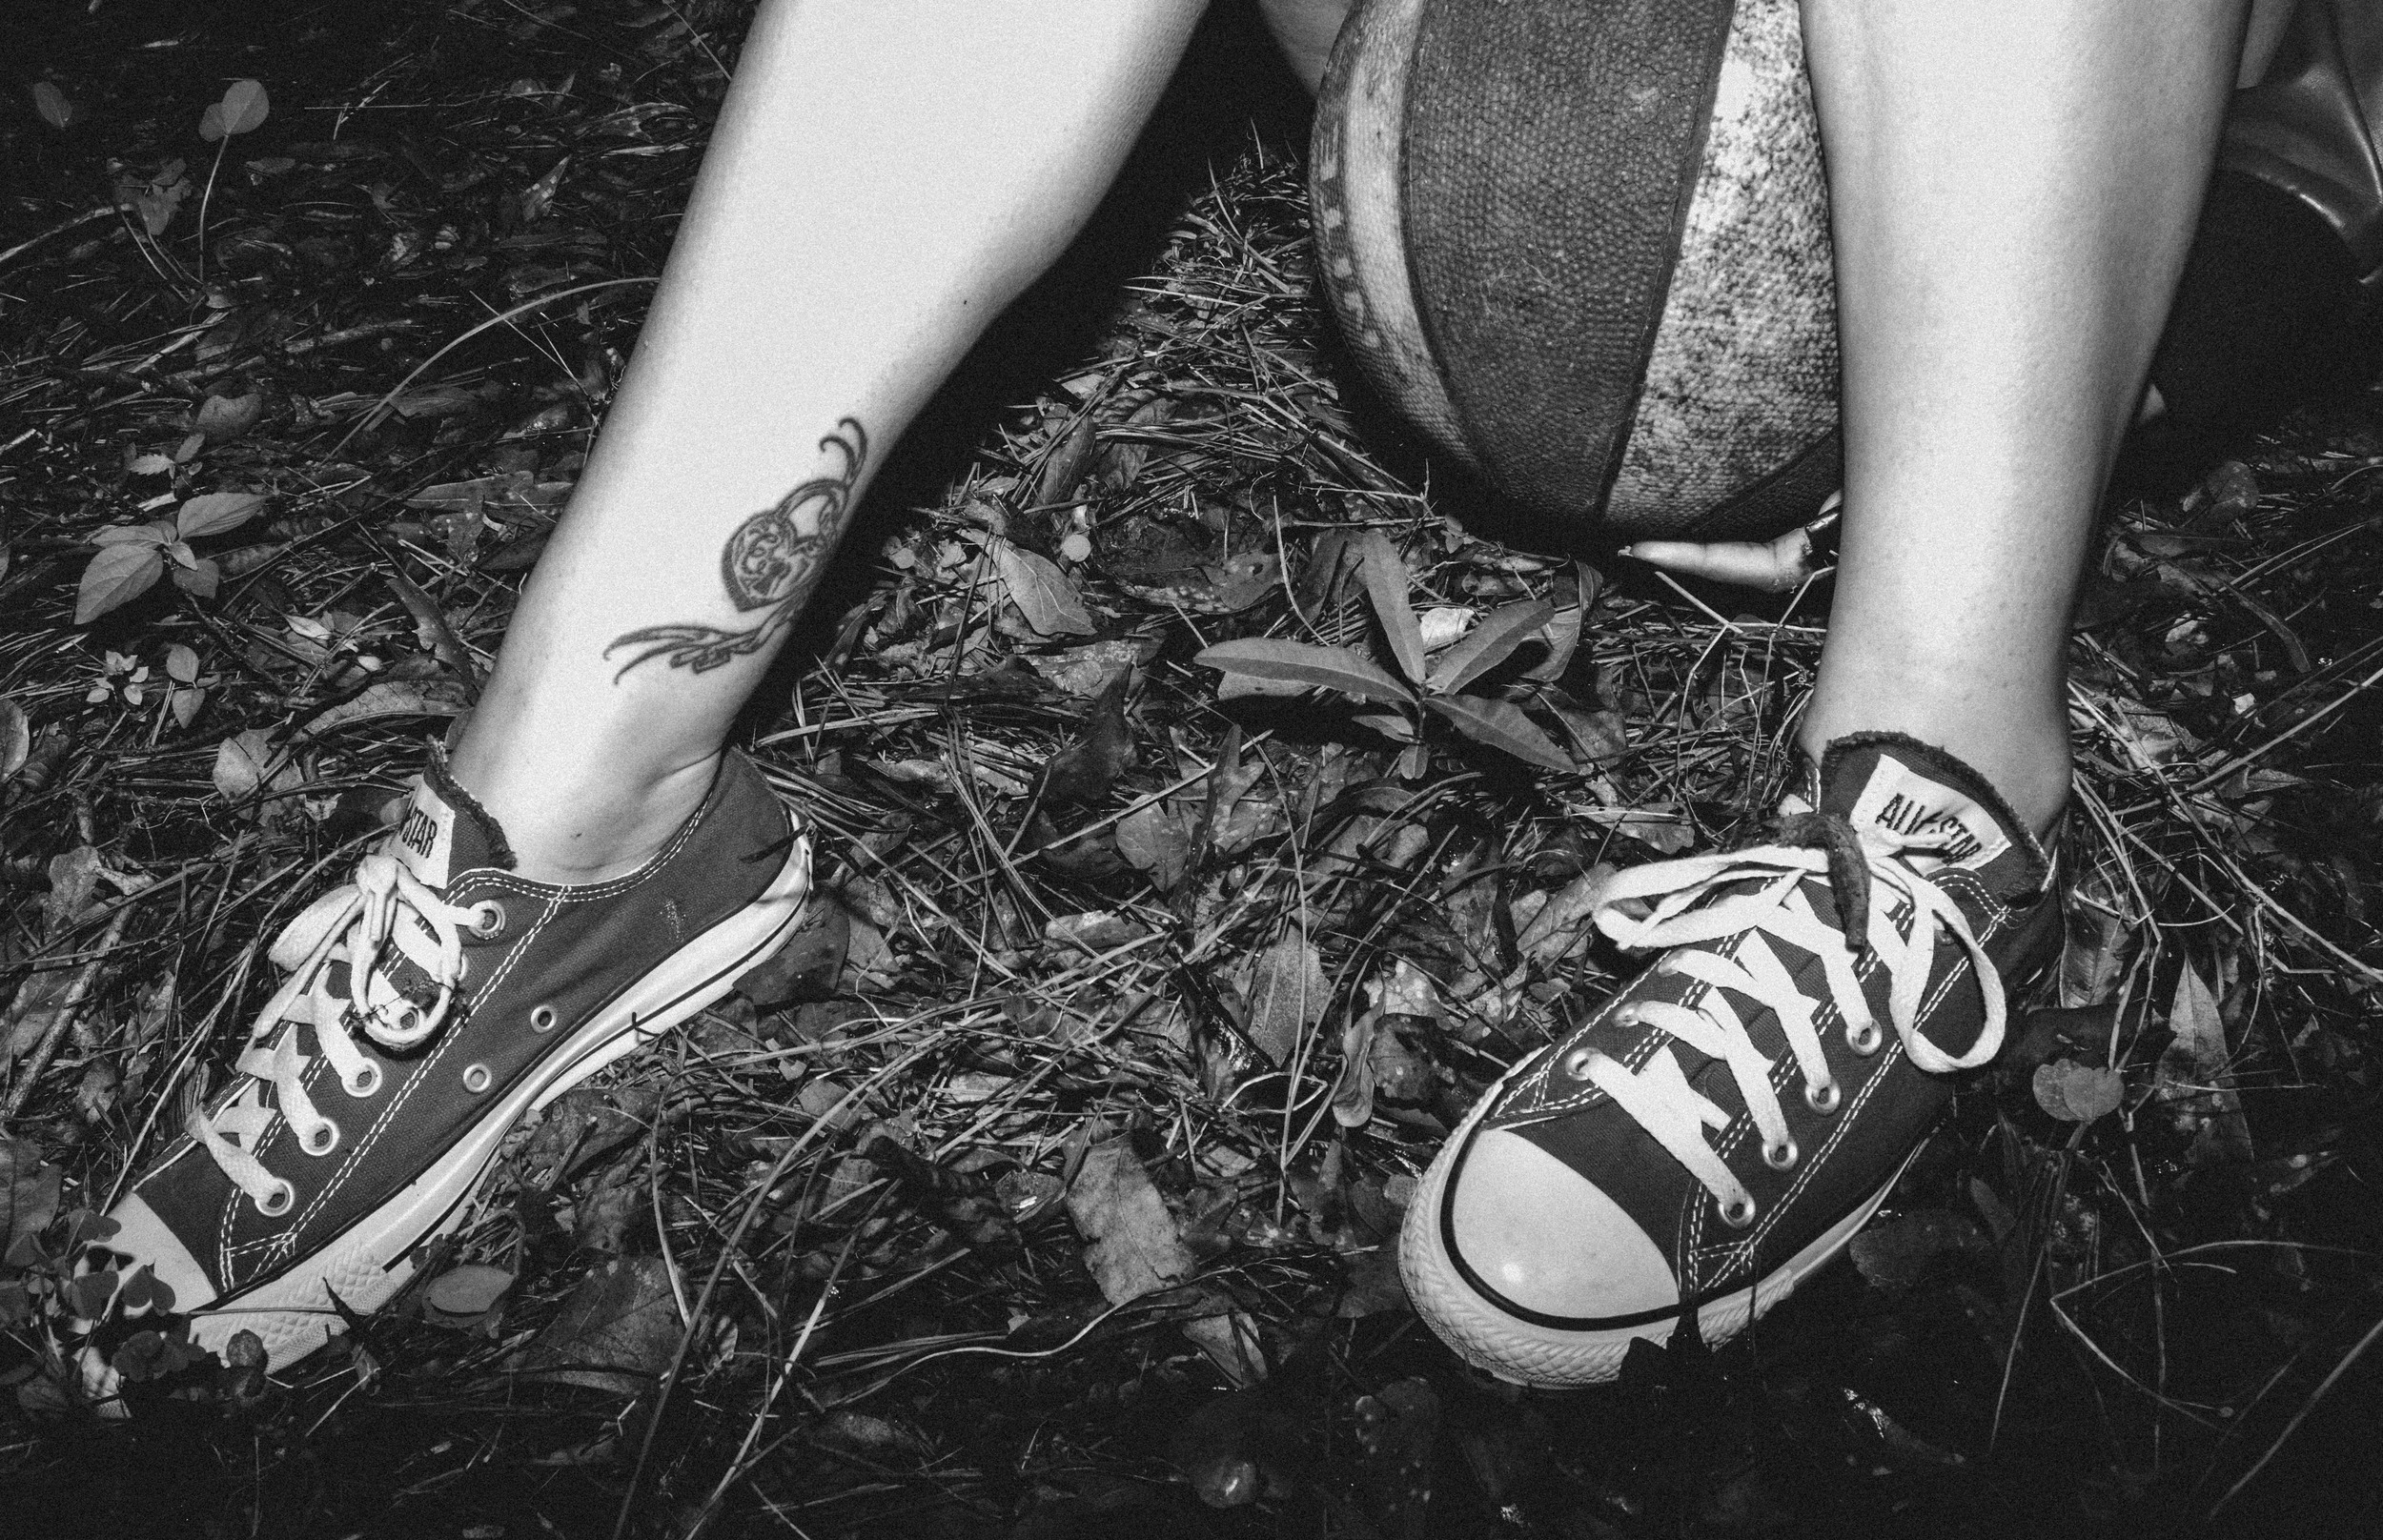 Stacie Shoes BW Edit (1 of 1).jpg